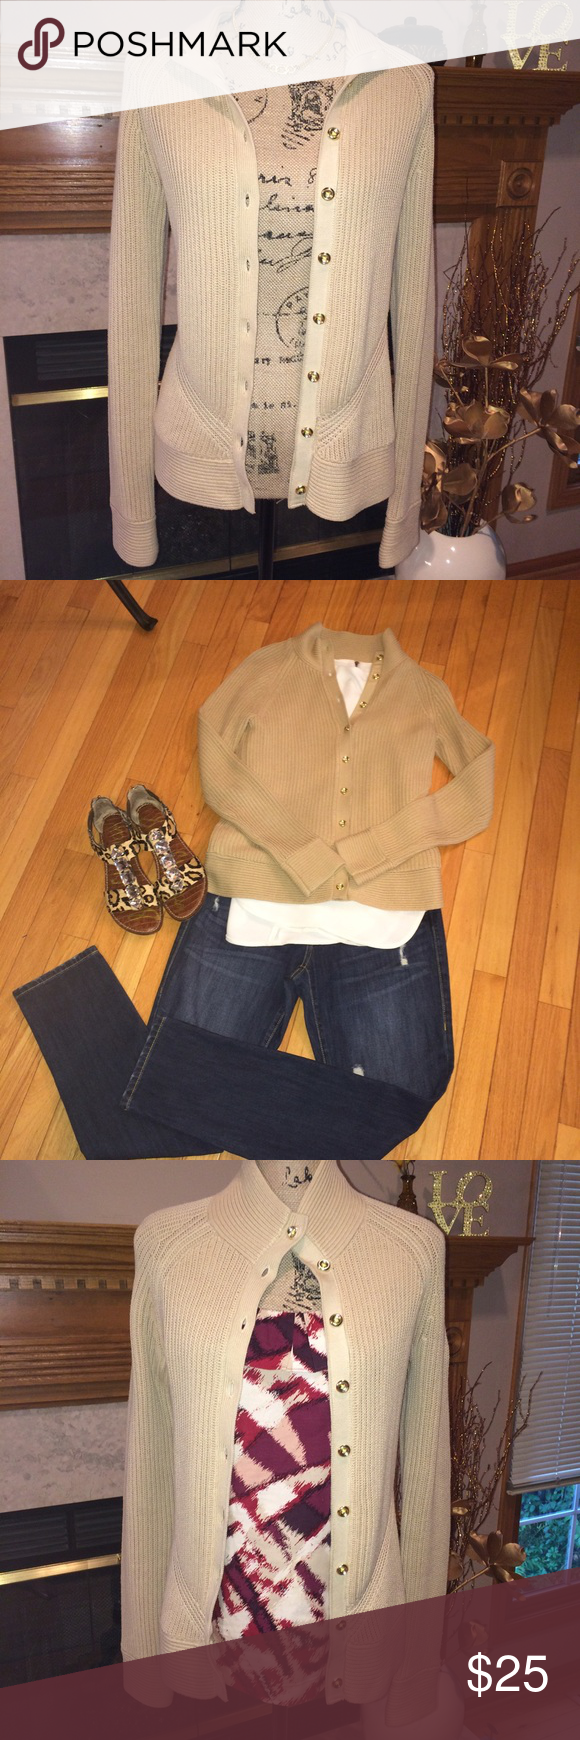 Banana Republic cardigan VGUC, Banana Republic ribbed cardigan with gold buttons. Wear it with a simple white top as shown or looks cute paired with the Ann Taylor tank top in my closet. Banana Republic Sweaters Cardigans